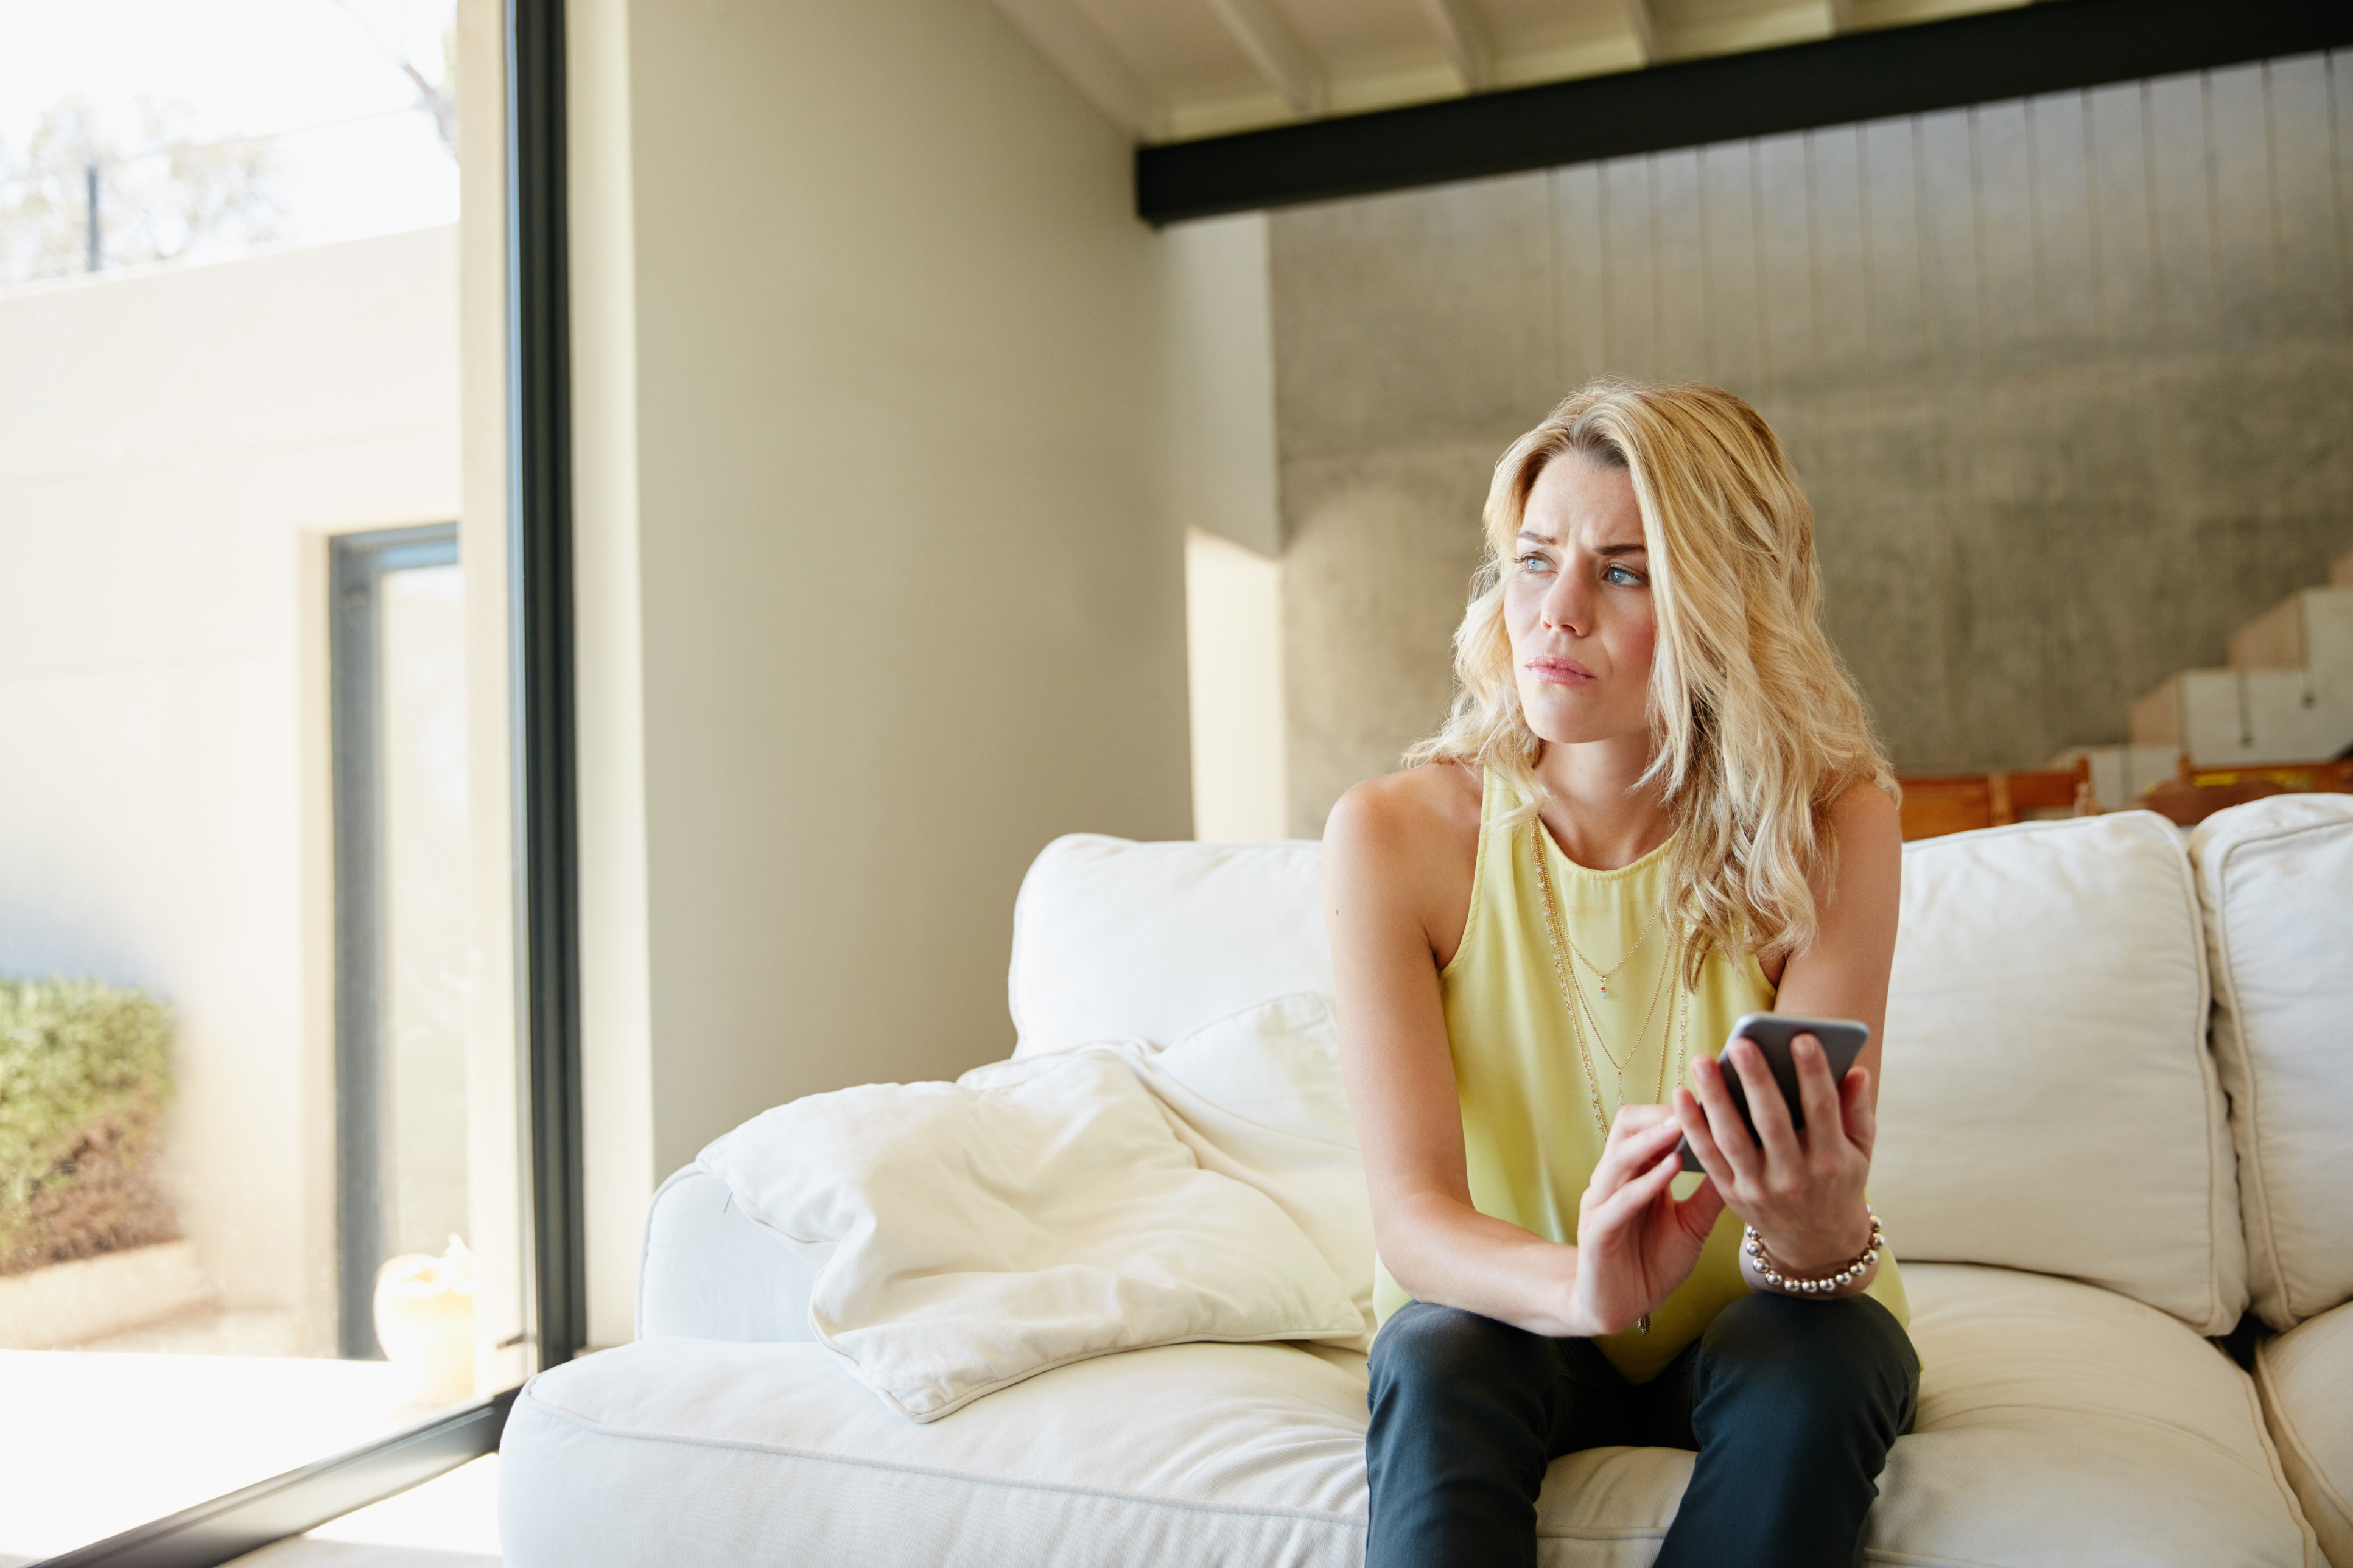 Online Dating: Should I Initiate Contact After An Unsuccessful Intimate Night?